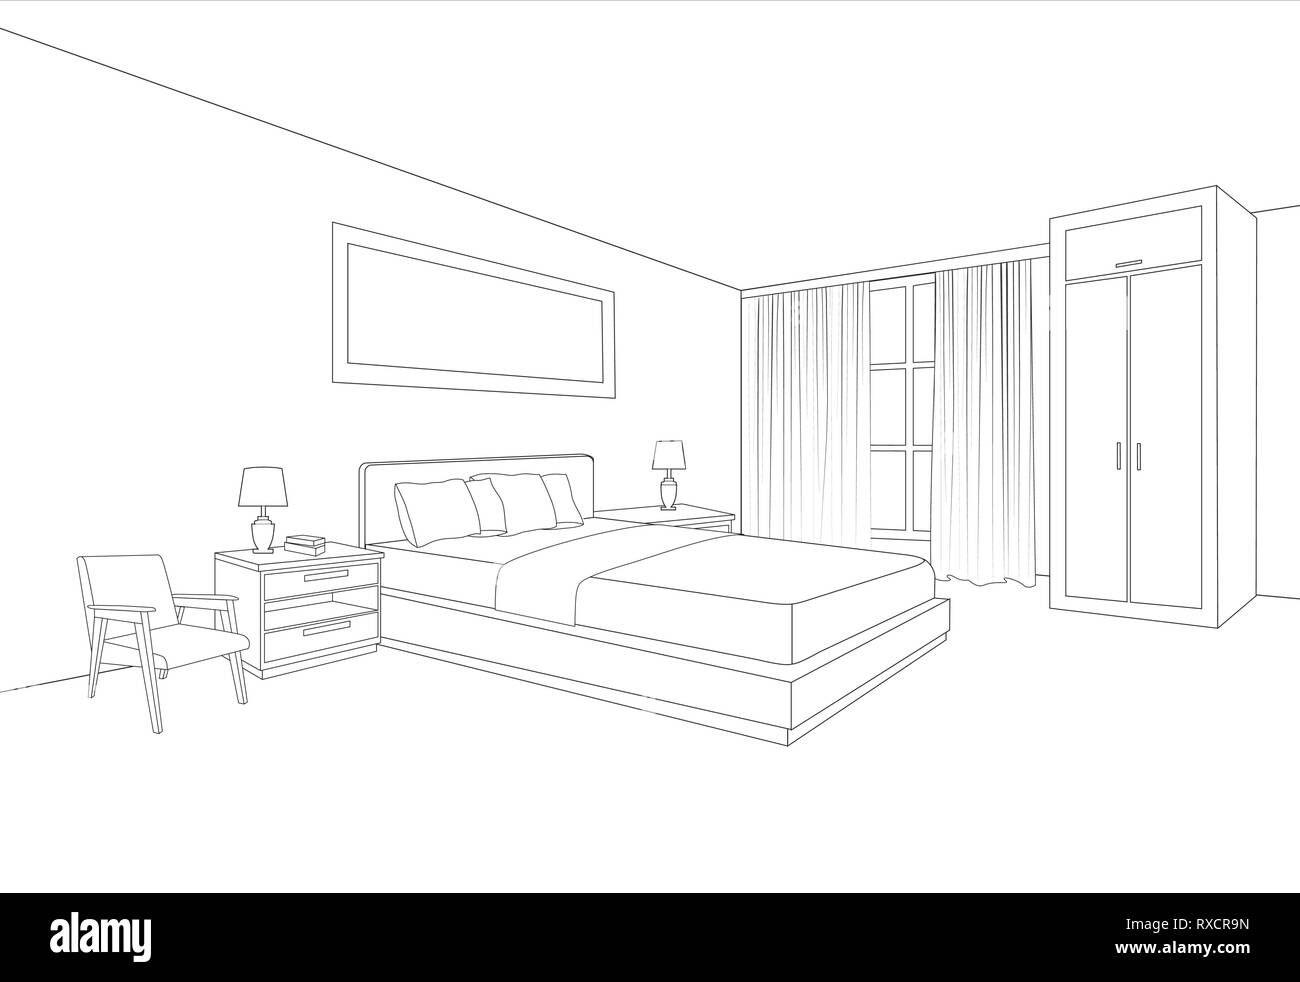 Bedroom Furniture Interior Room Line Sketch Drawing Home Indoor Design Perspective Of A Interior Space Stock Vector Image Art Alamy